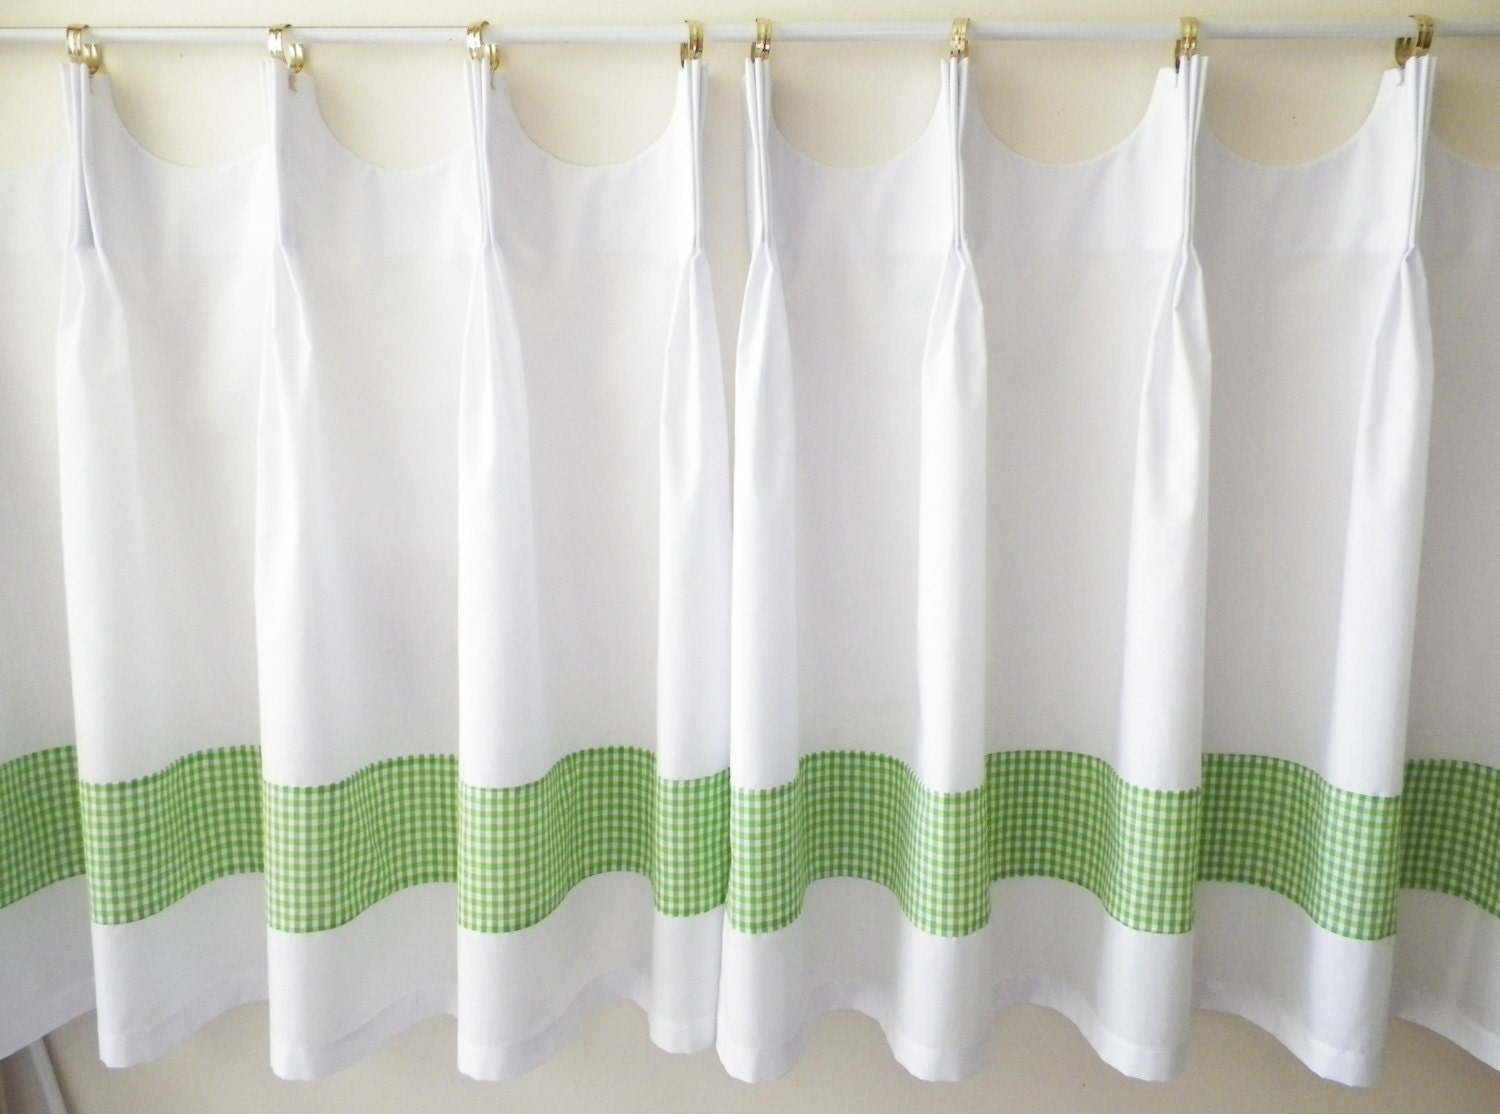 Scalloped Cafe Curtains With Green Gingham Band